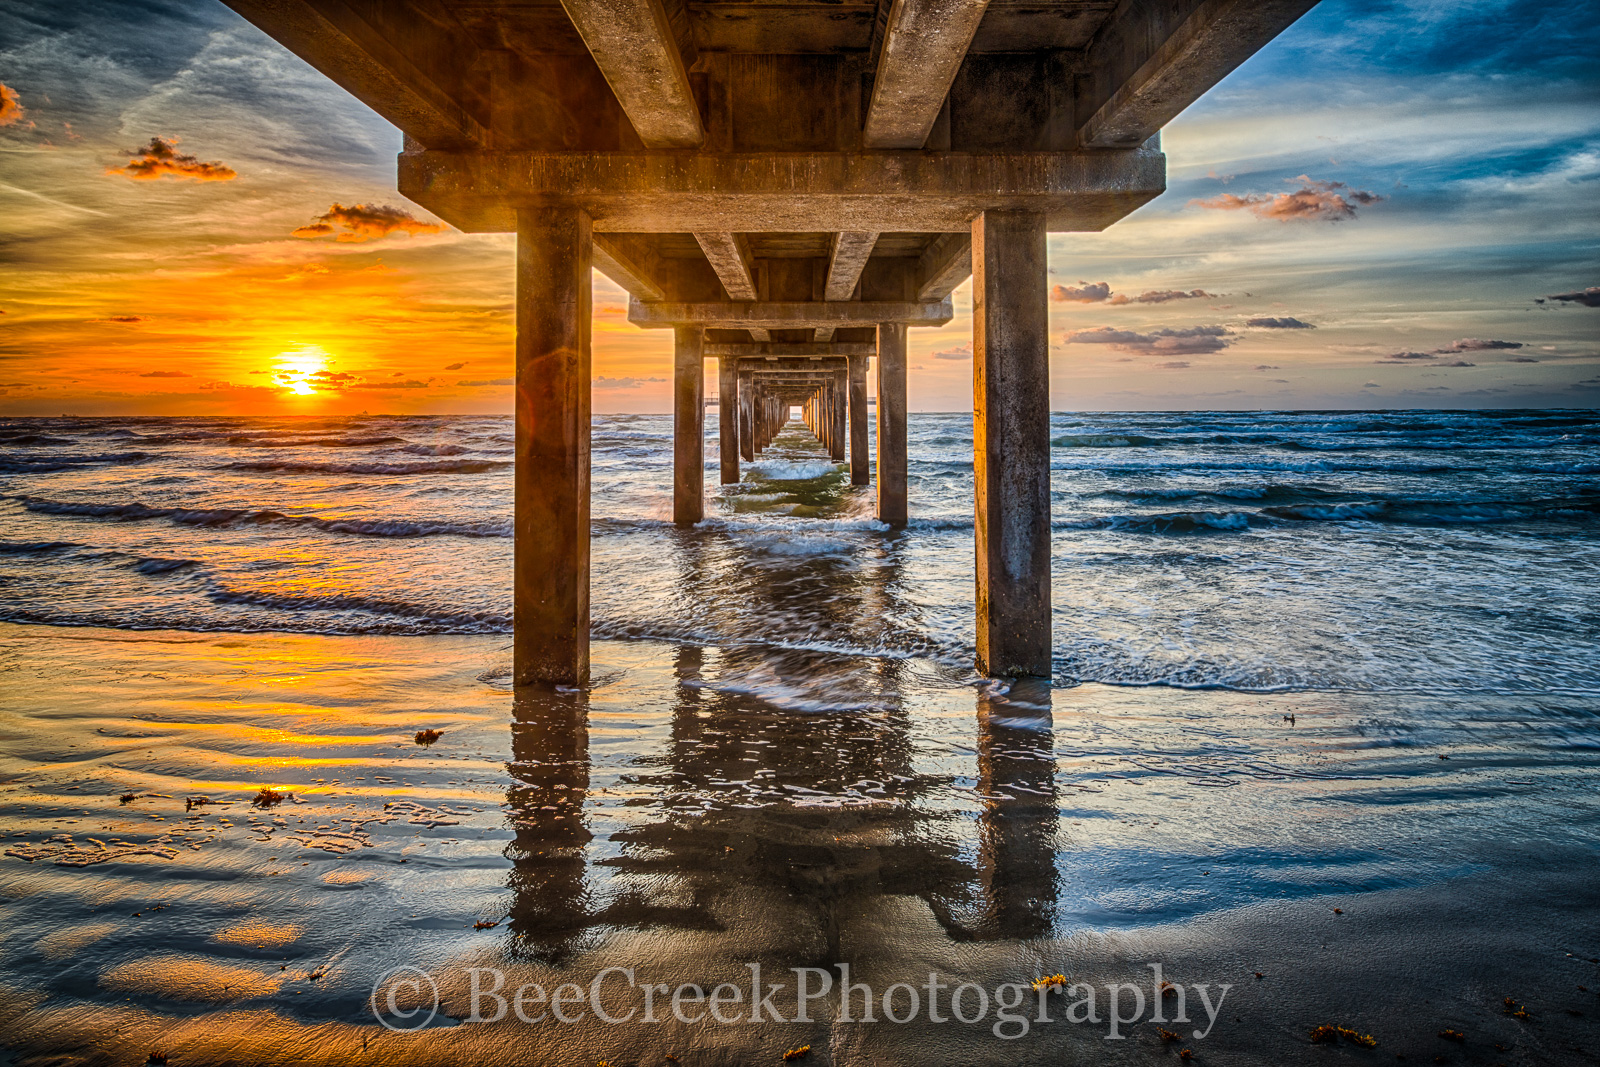 Caldwell pier, Port A, Texas pier, texas piers, Port Aransas, Sunrise, Texas Coast, Texas beach, Texas coastal landscape, beach, beach ocean, coast, coastal, colorful sunrise, fishing pier, gulf of me, photo